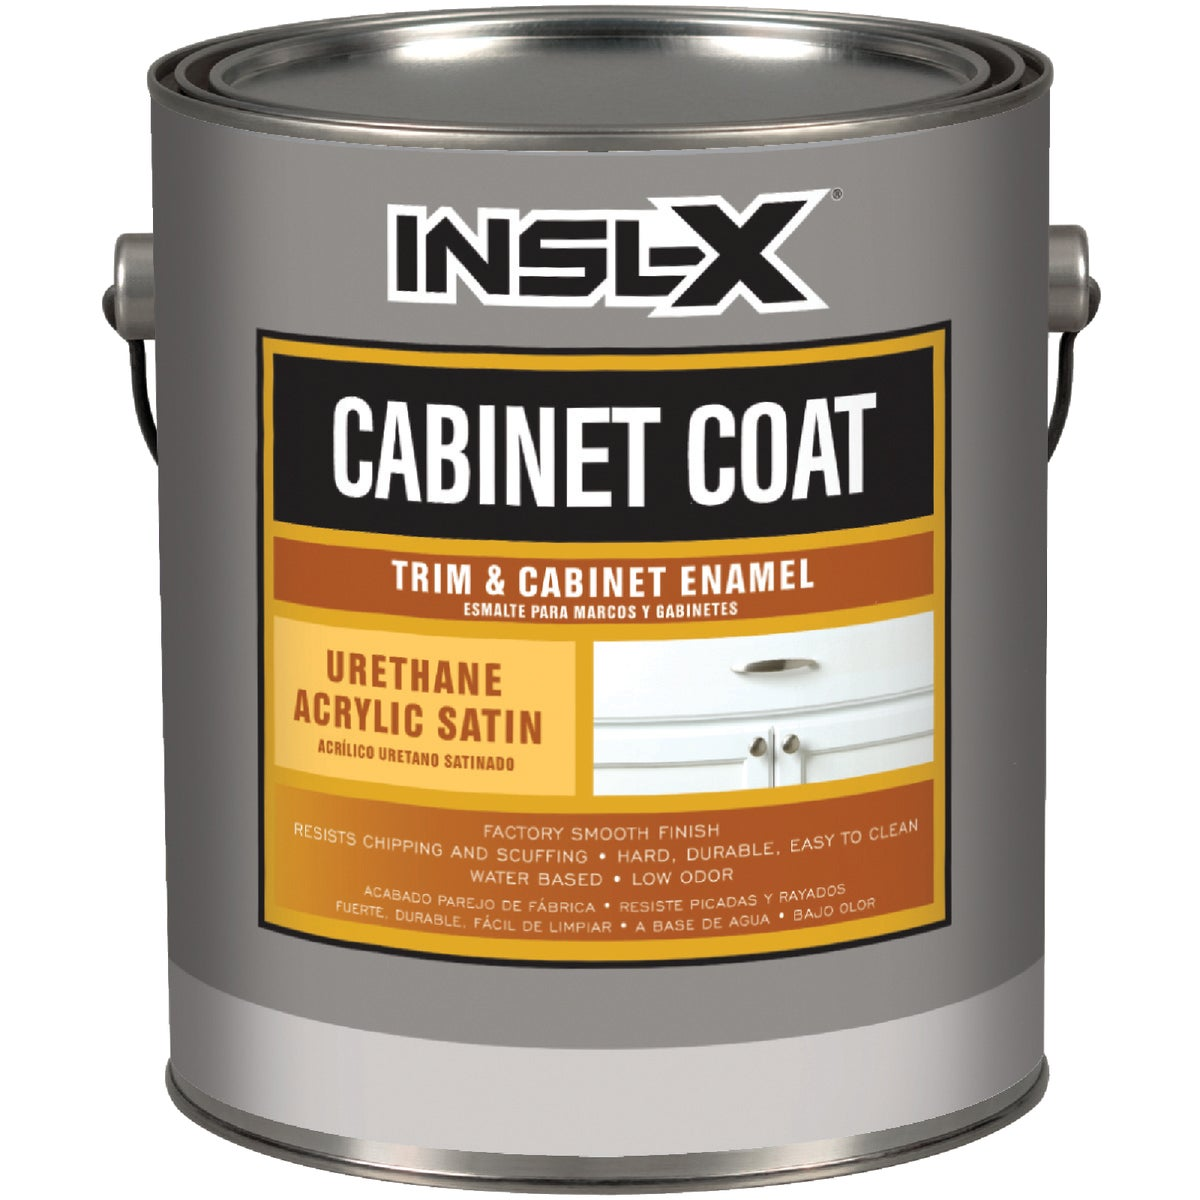 SAT TINT CABINET ENAMEL - CC4560092-01 by Insl X Prod Corp